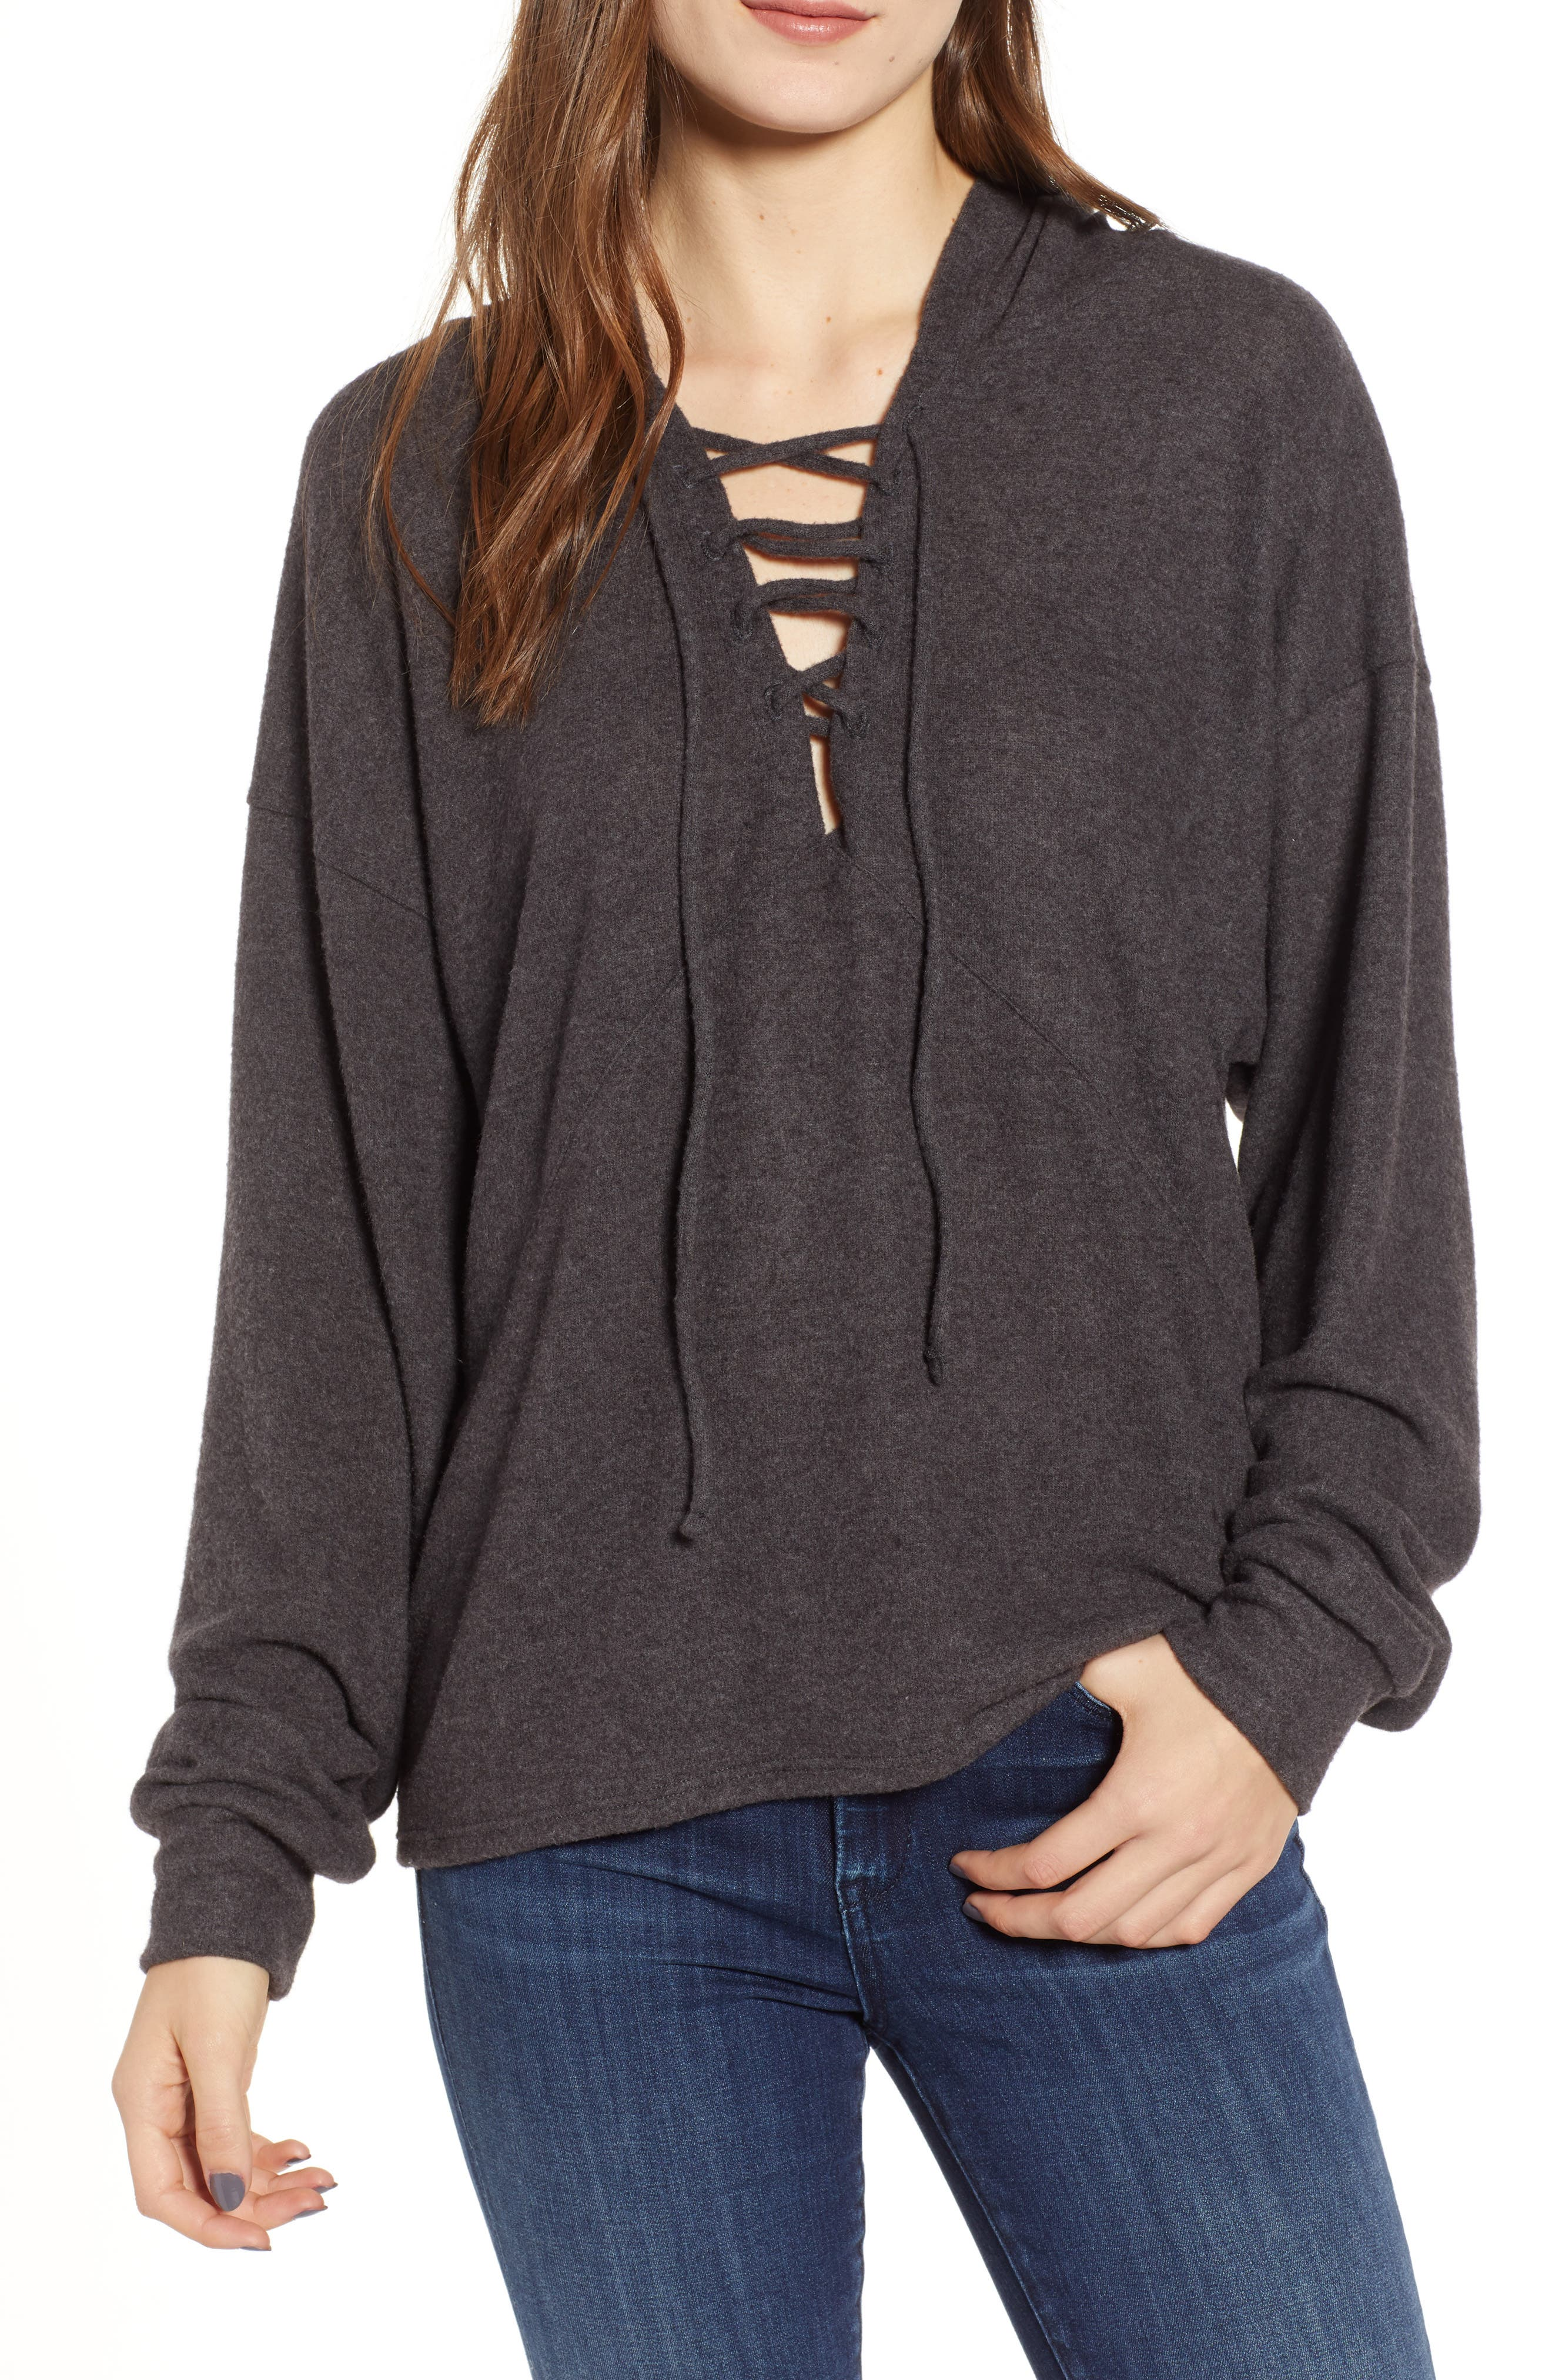 PROJECT SOCIAL T Calhoun Lace-Up Hoodie in Charcoal